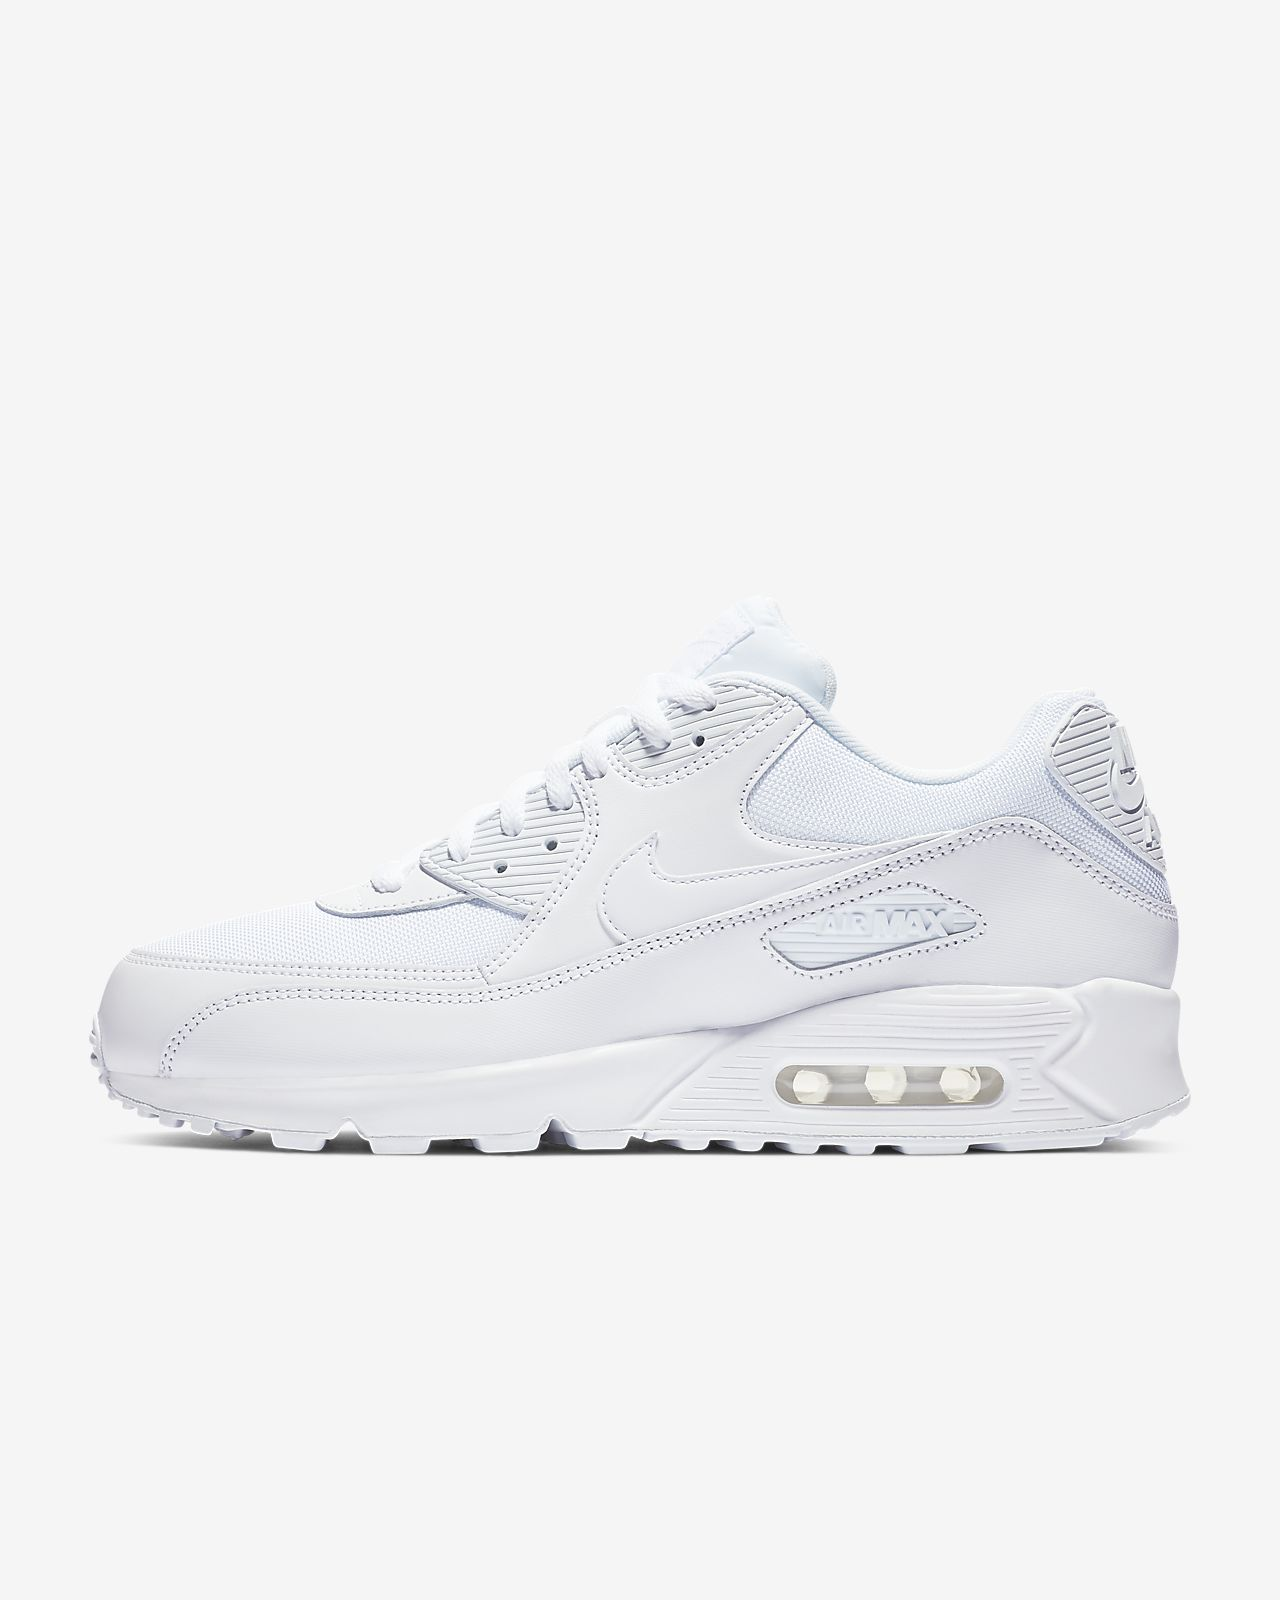 84c4a43de95 Nike Air Max 90 Essential Men s Shoe. Nike.com